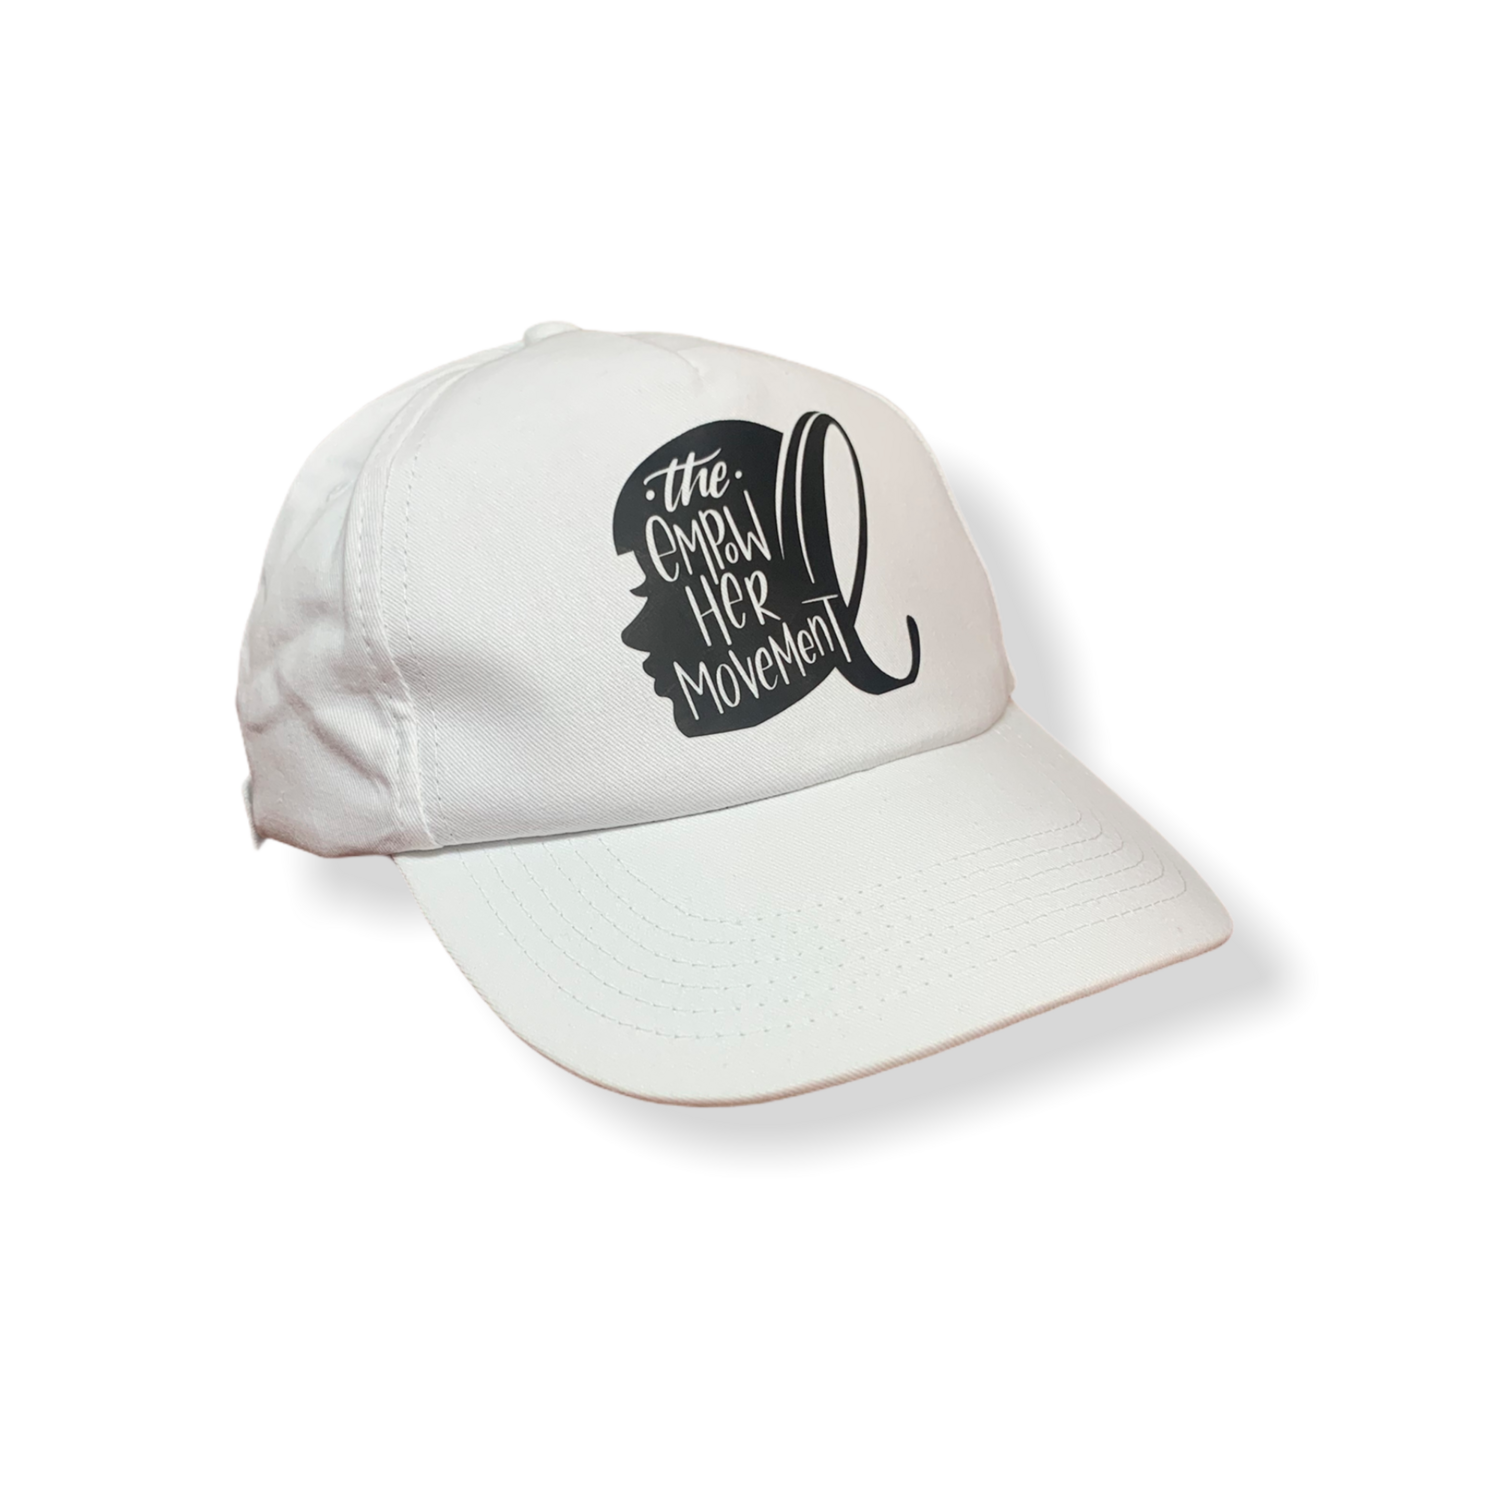 The EmpowHer Movement Hat